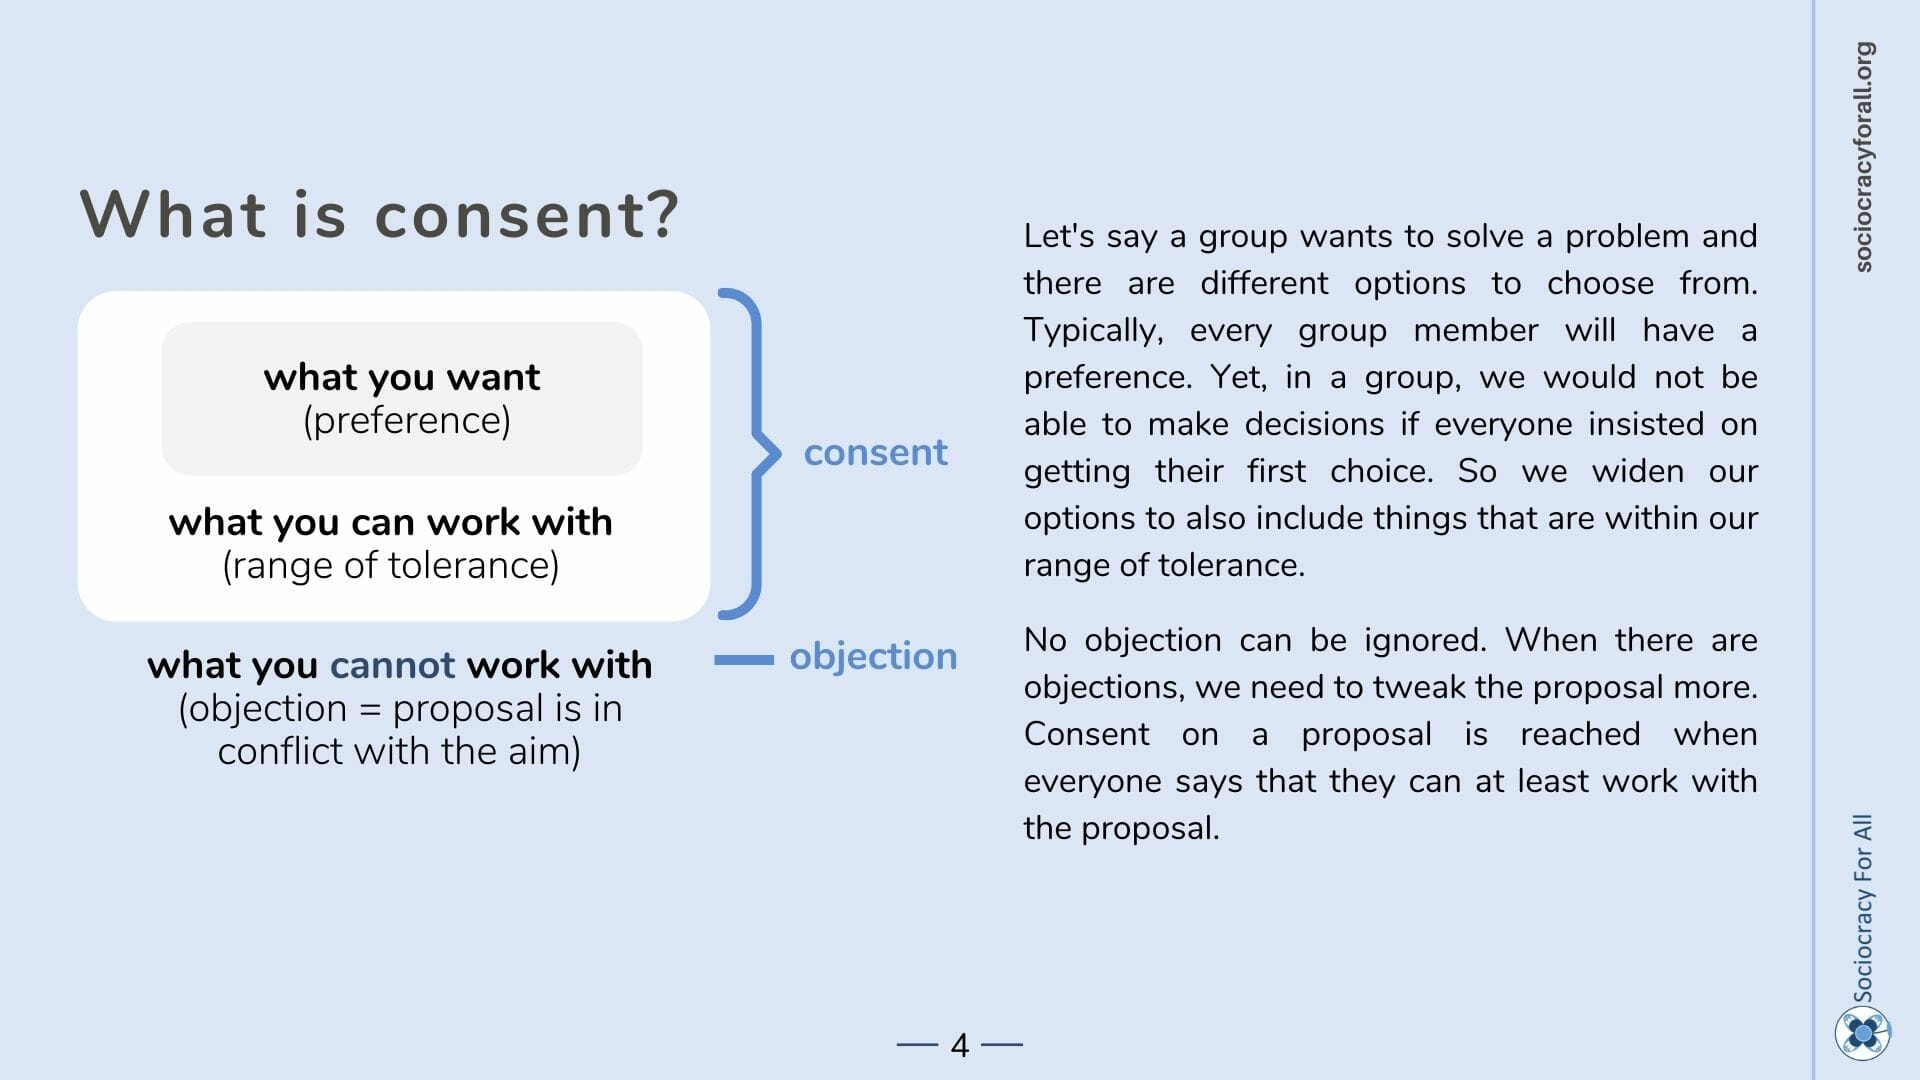 Consent = what you want (preference) and what you can work with (range of tolerance). Objection= what you cannot work with. Objection = proposal is in conflict with the aim. Let's say a group wants to solve a problem and there are different options to choose from. Typically, every group member will have a preference. Yet, in a group, we would not be able to make decisions if everyone insisted on getting their first choice. So we widen our options to also include things that are within our range of tolerance. No objection can be ignored. When there are objections, we need to tweak the proposal more. Consent on a proposal is reached when everyone says that they can at least work with the proposal.